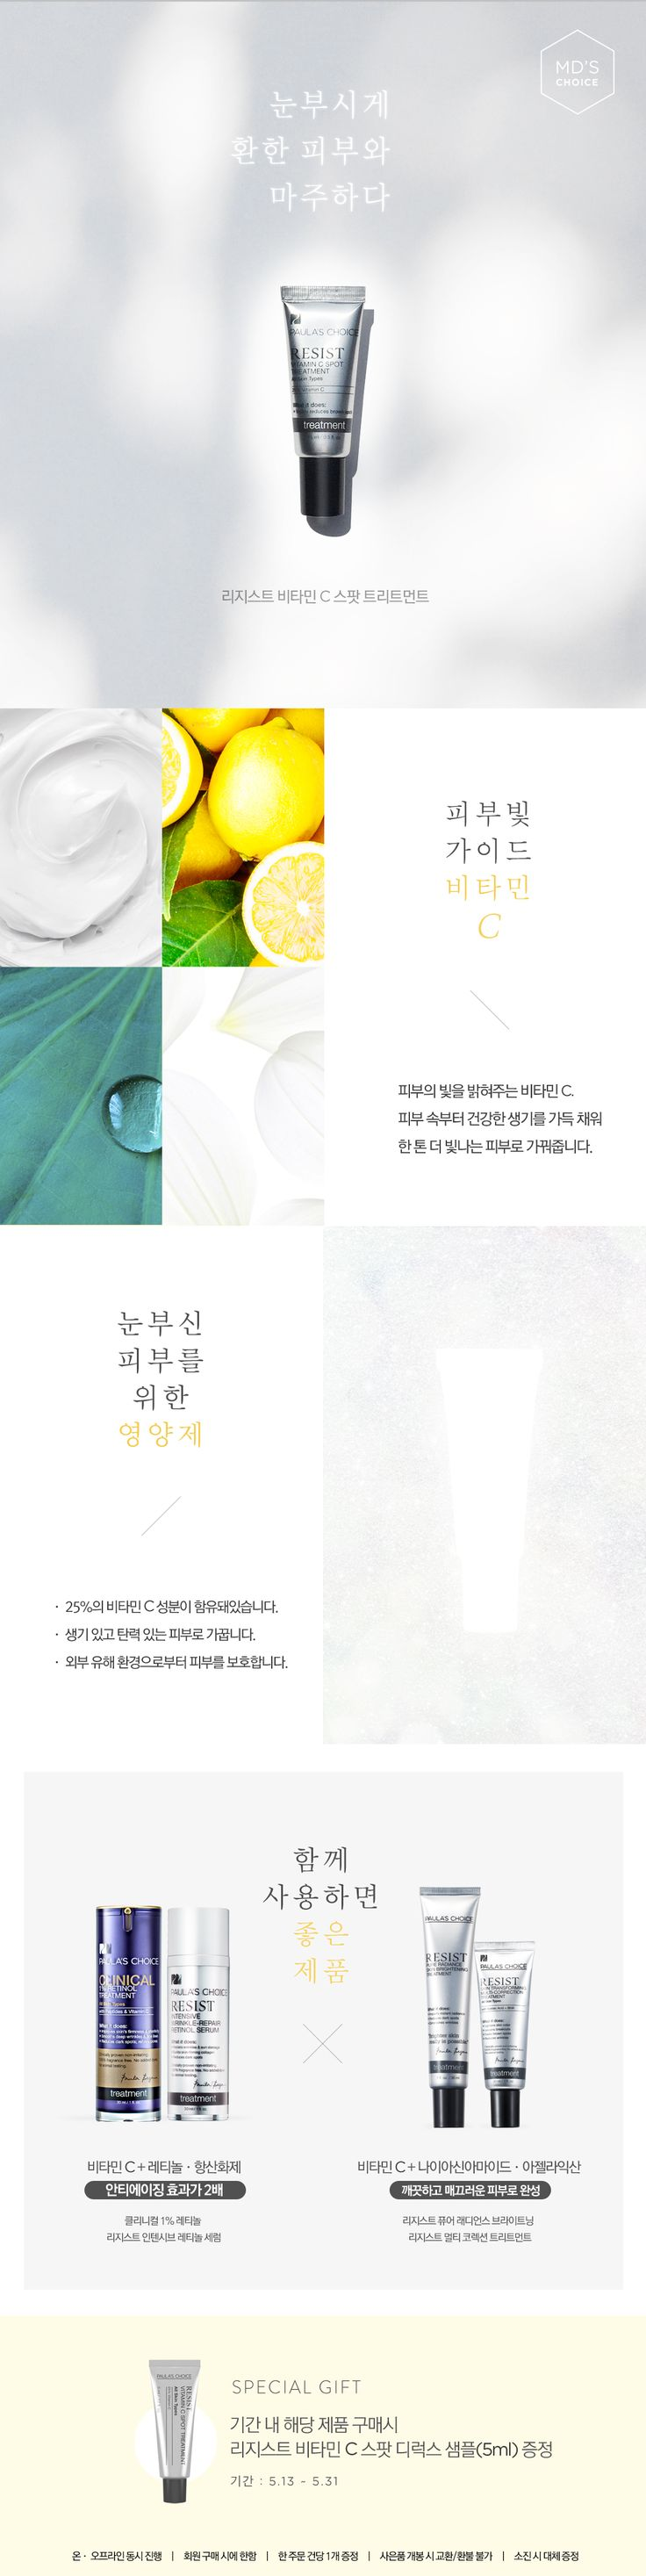 [paula's choice] WEB PAGE / EVENT / PR / COSMETICS / TREATMENT / LAYOUT / WEBDESIGN / VITAMINC / DESIGN / 폴라초이스 / 이벤트 / 웹디자인 / 레이아웃